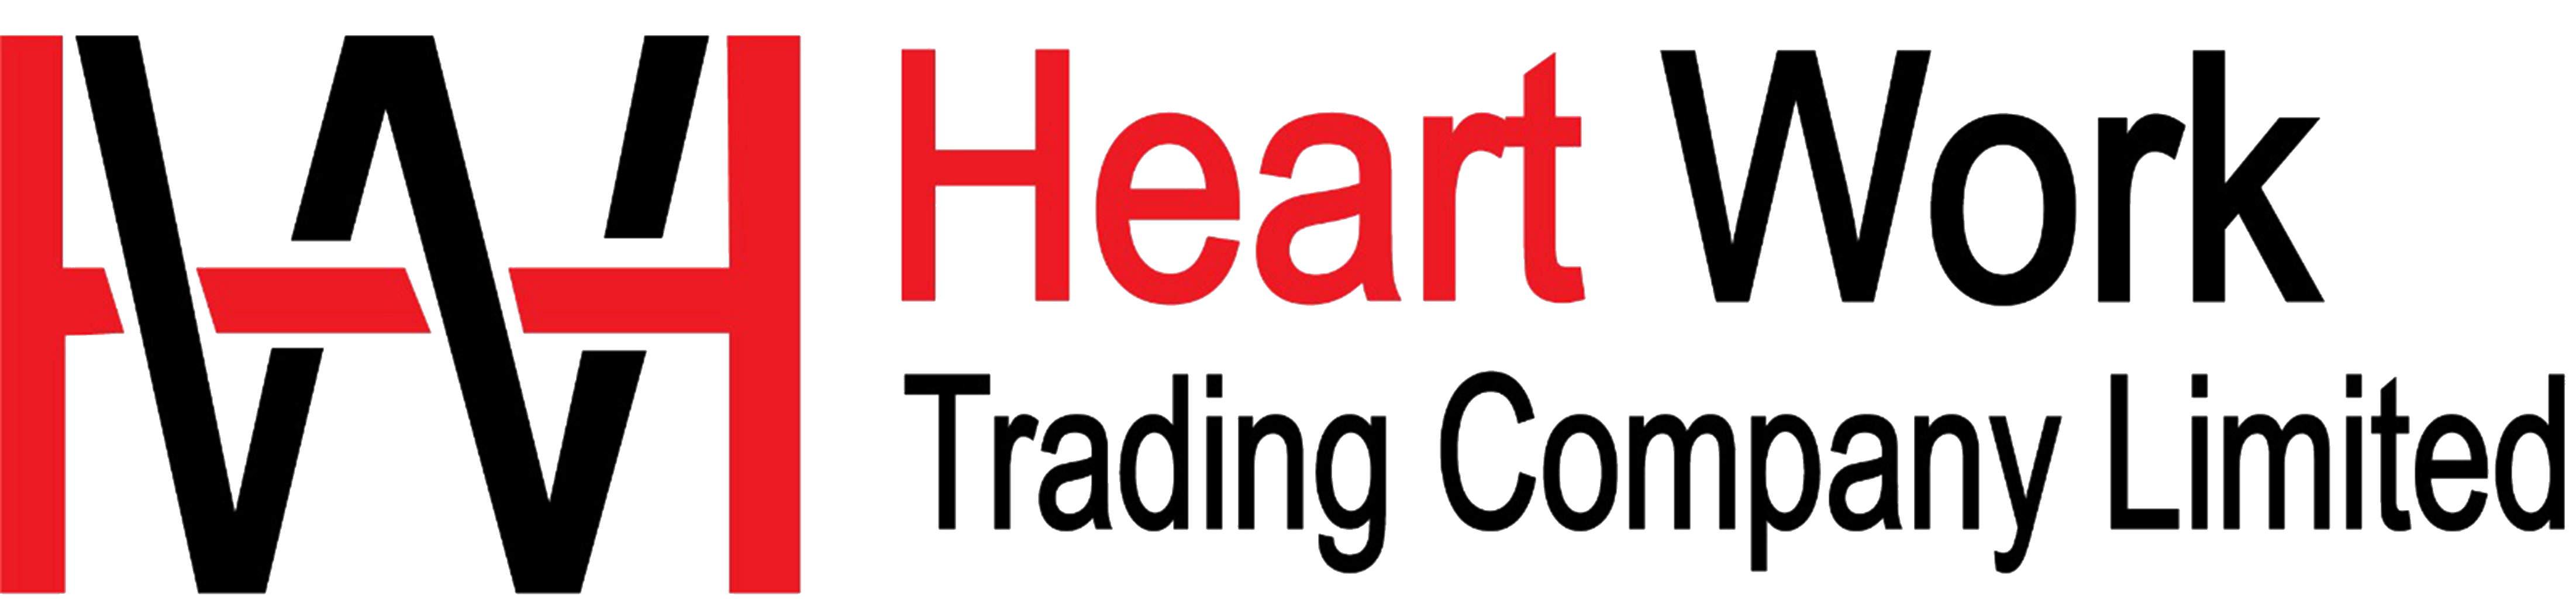 Heart Work Trading Company Limited